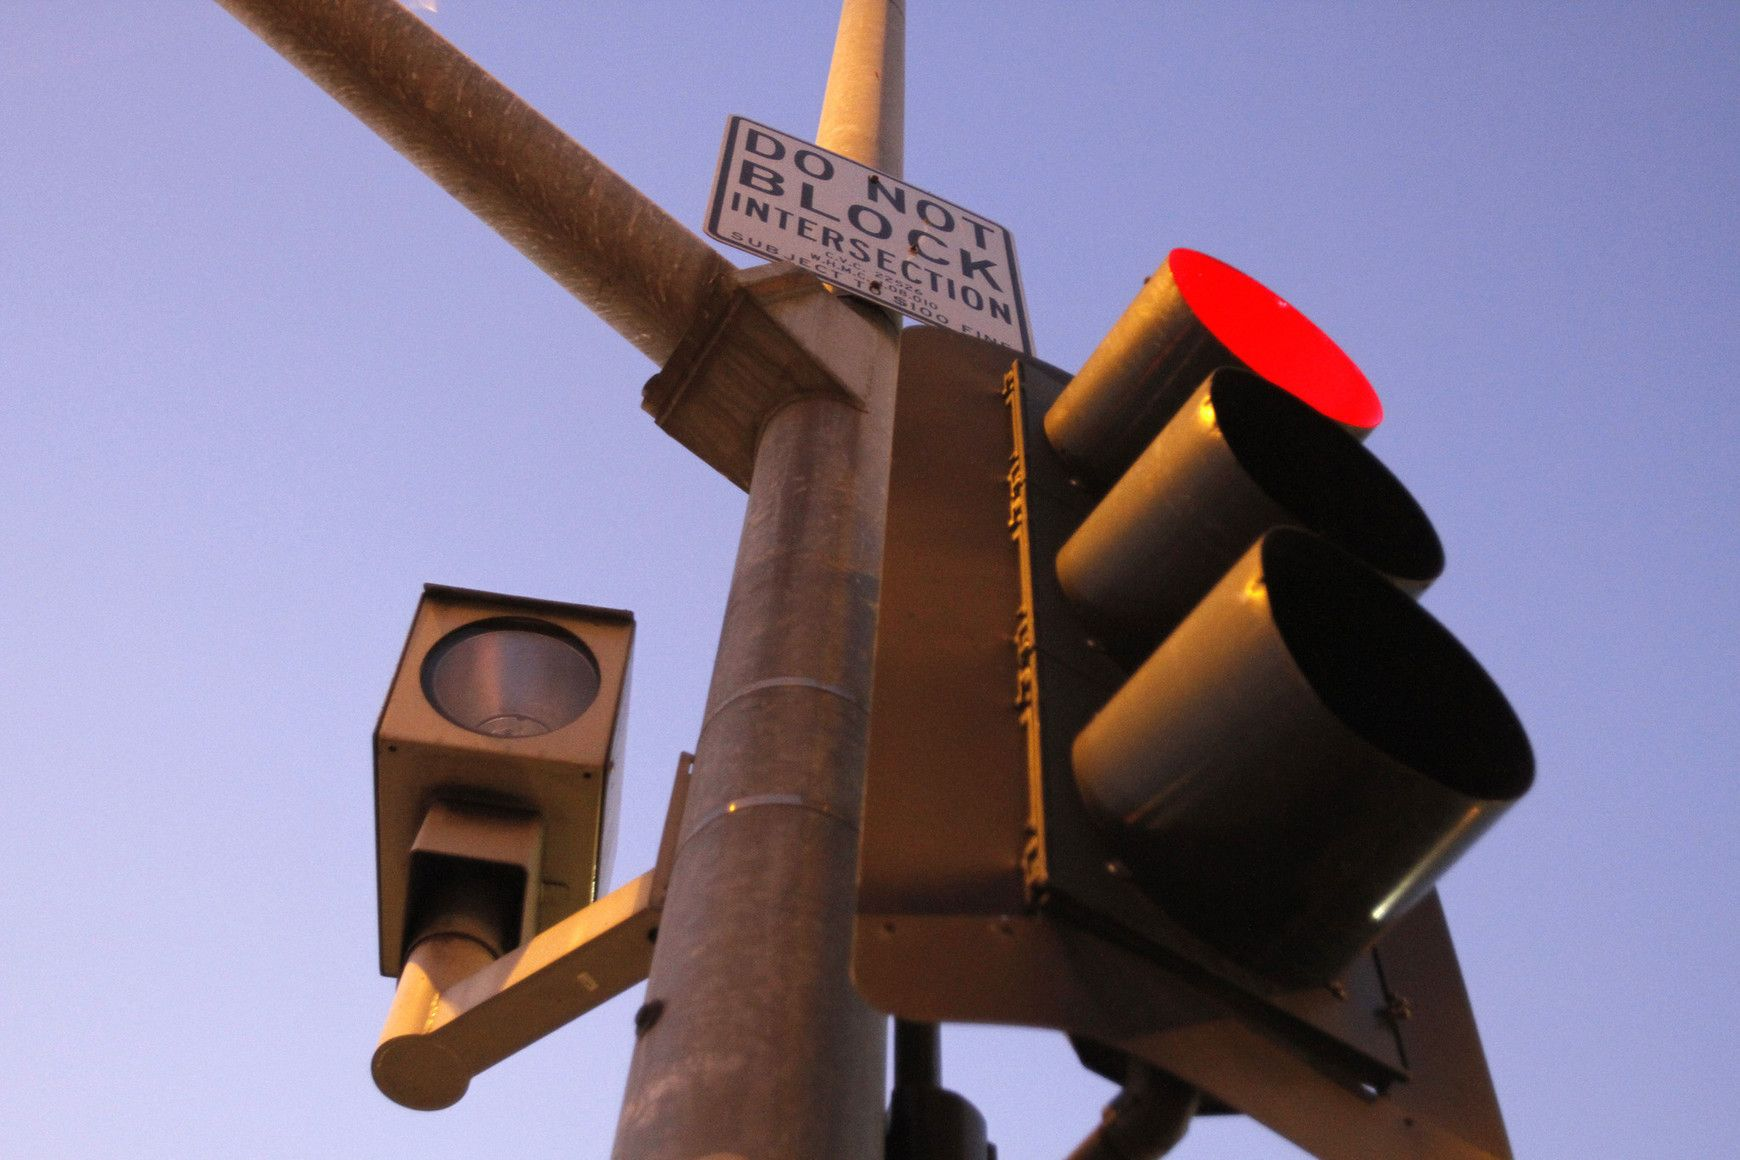 New Red Light Cameras Would Be Banned Under Propose California Legislation